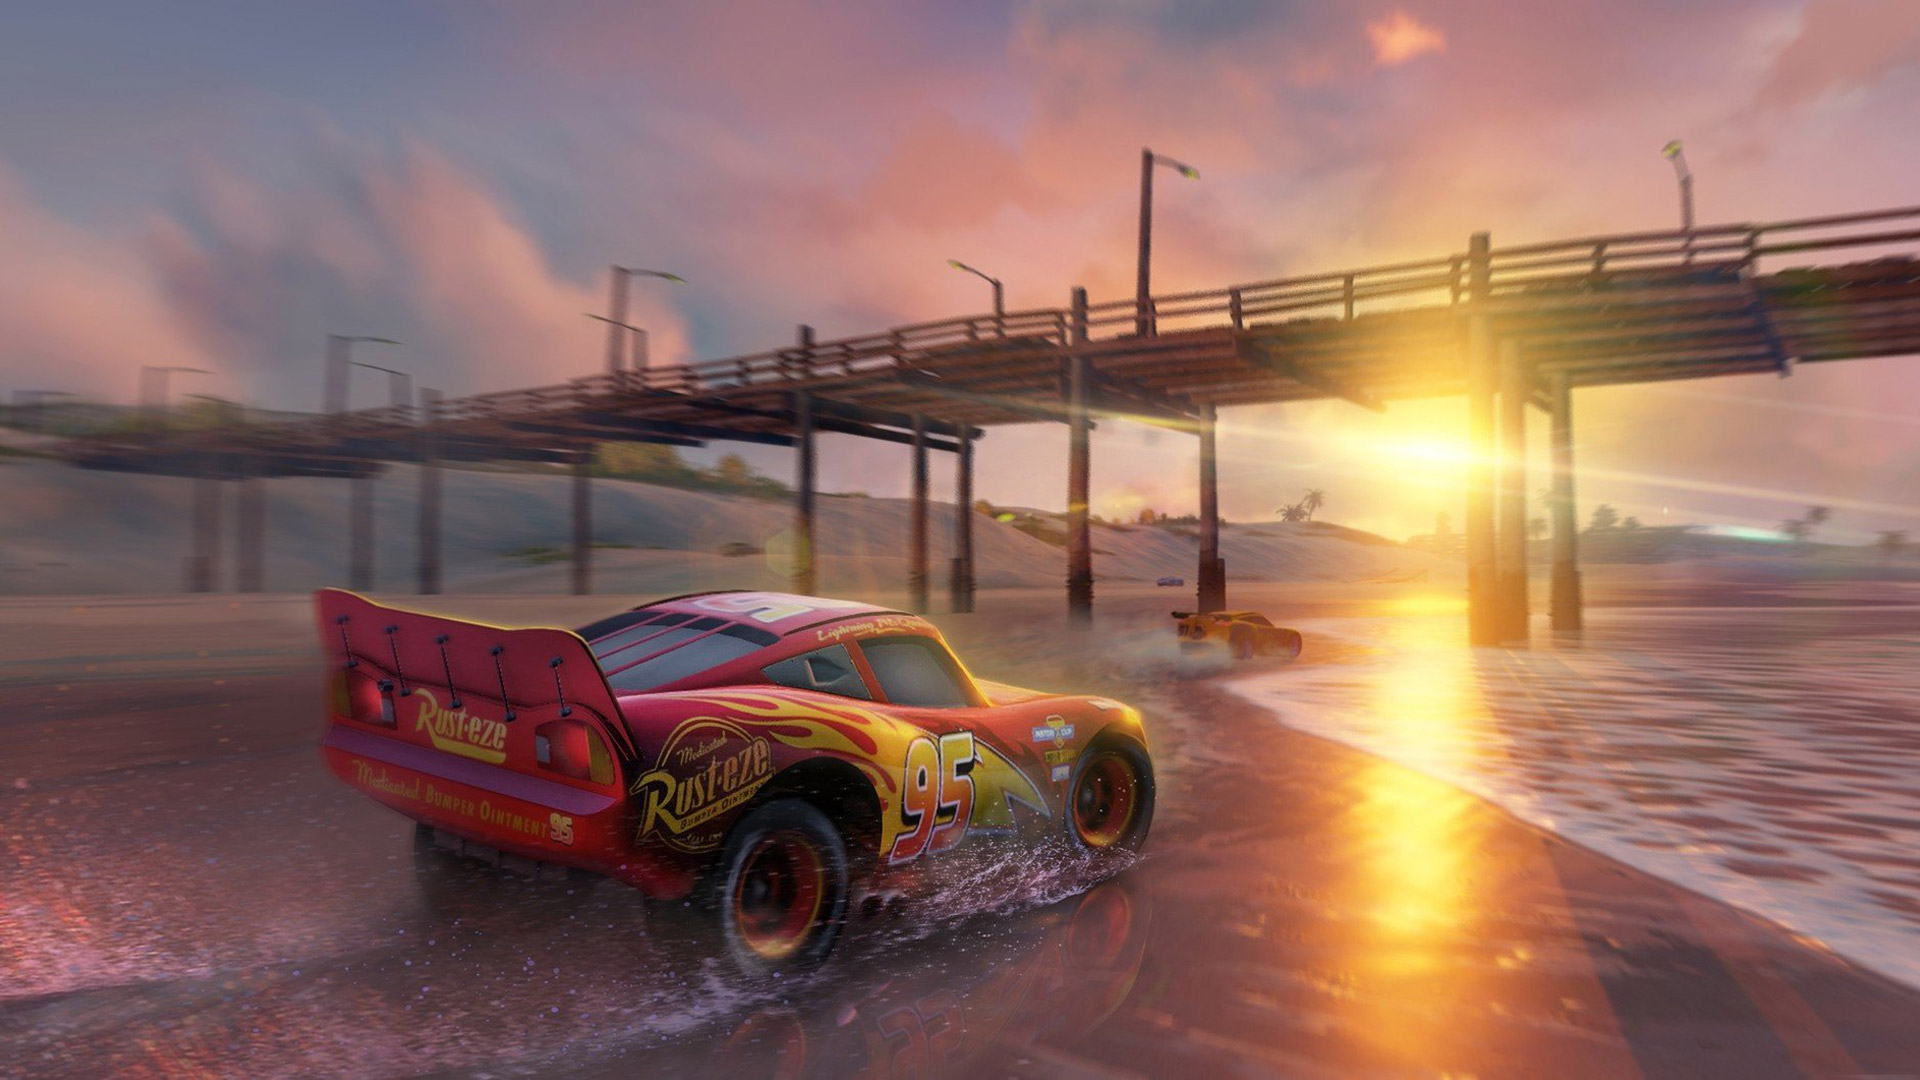 Cars 3: Driven to Win Wallpaper in 1920x1080